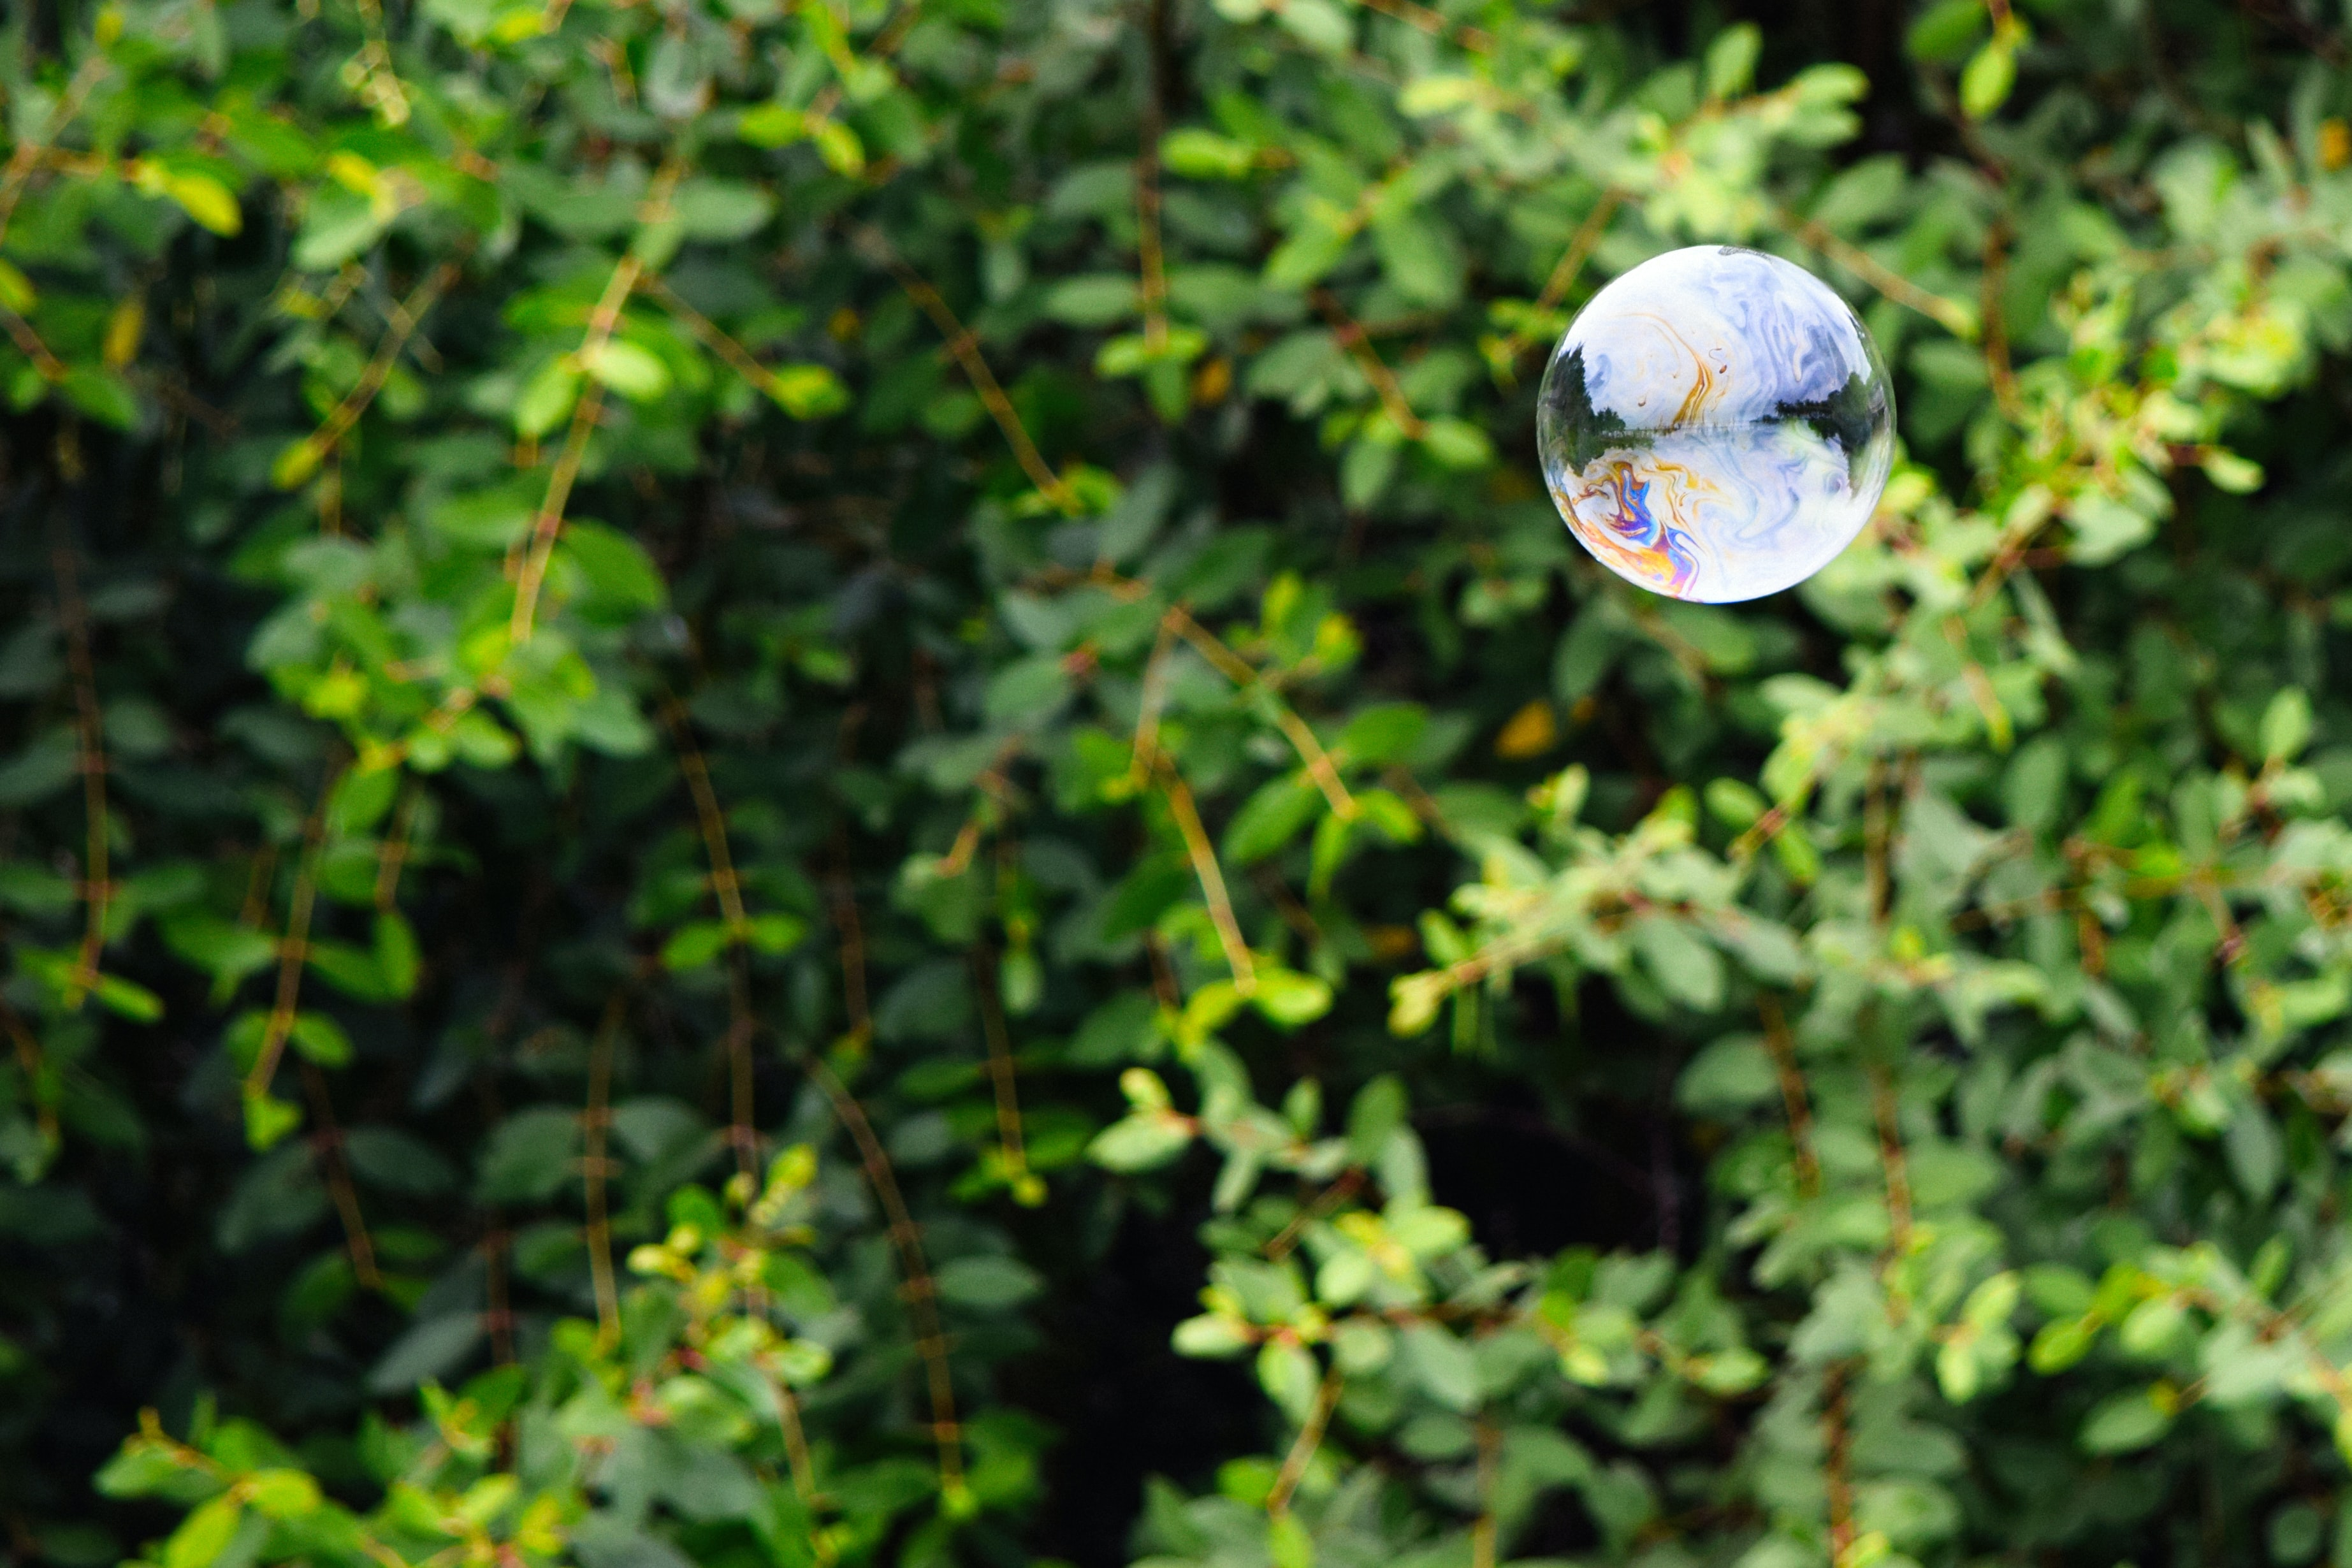 A spherical soap bubble floats in the air near leaves